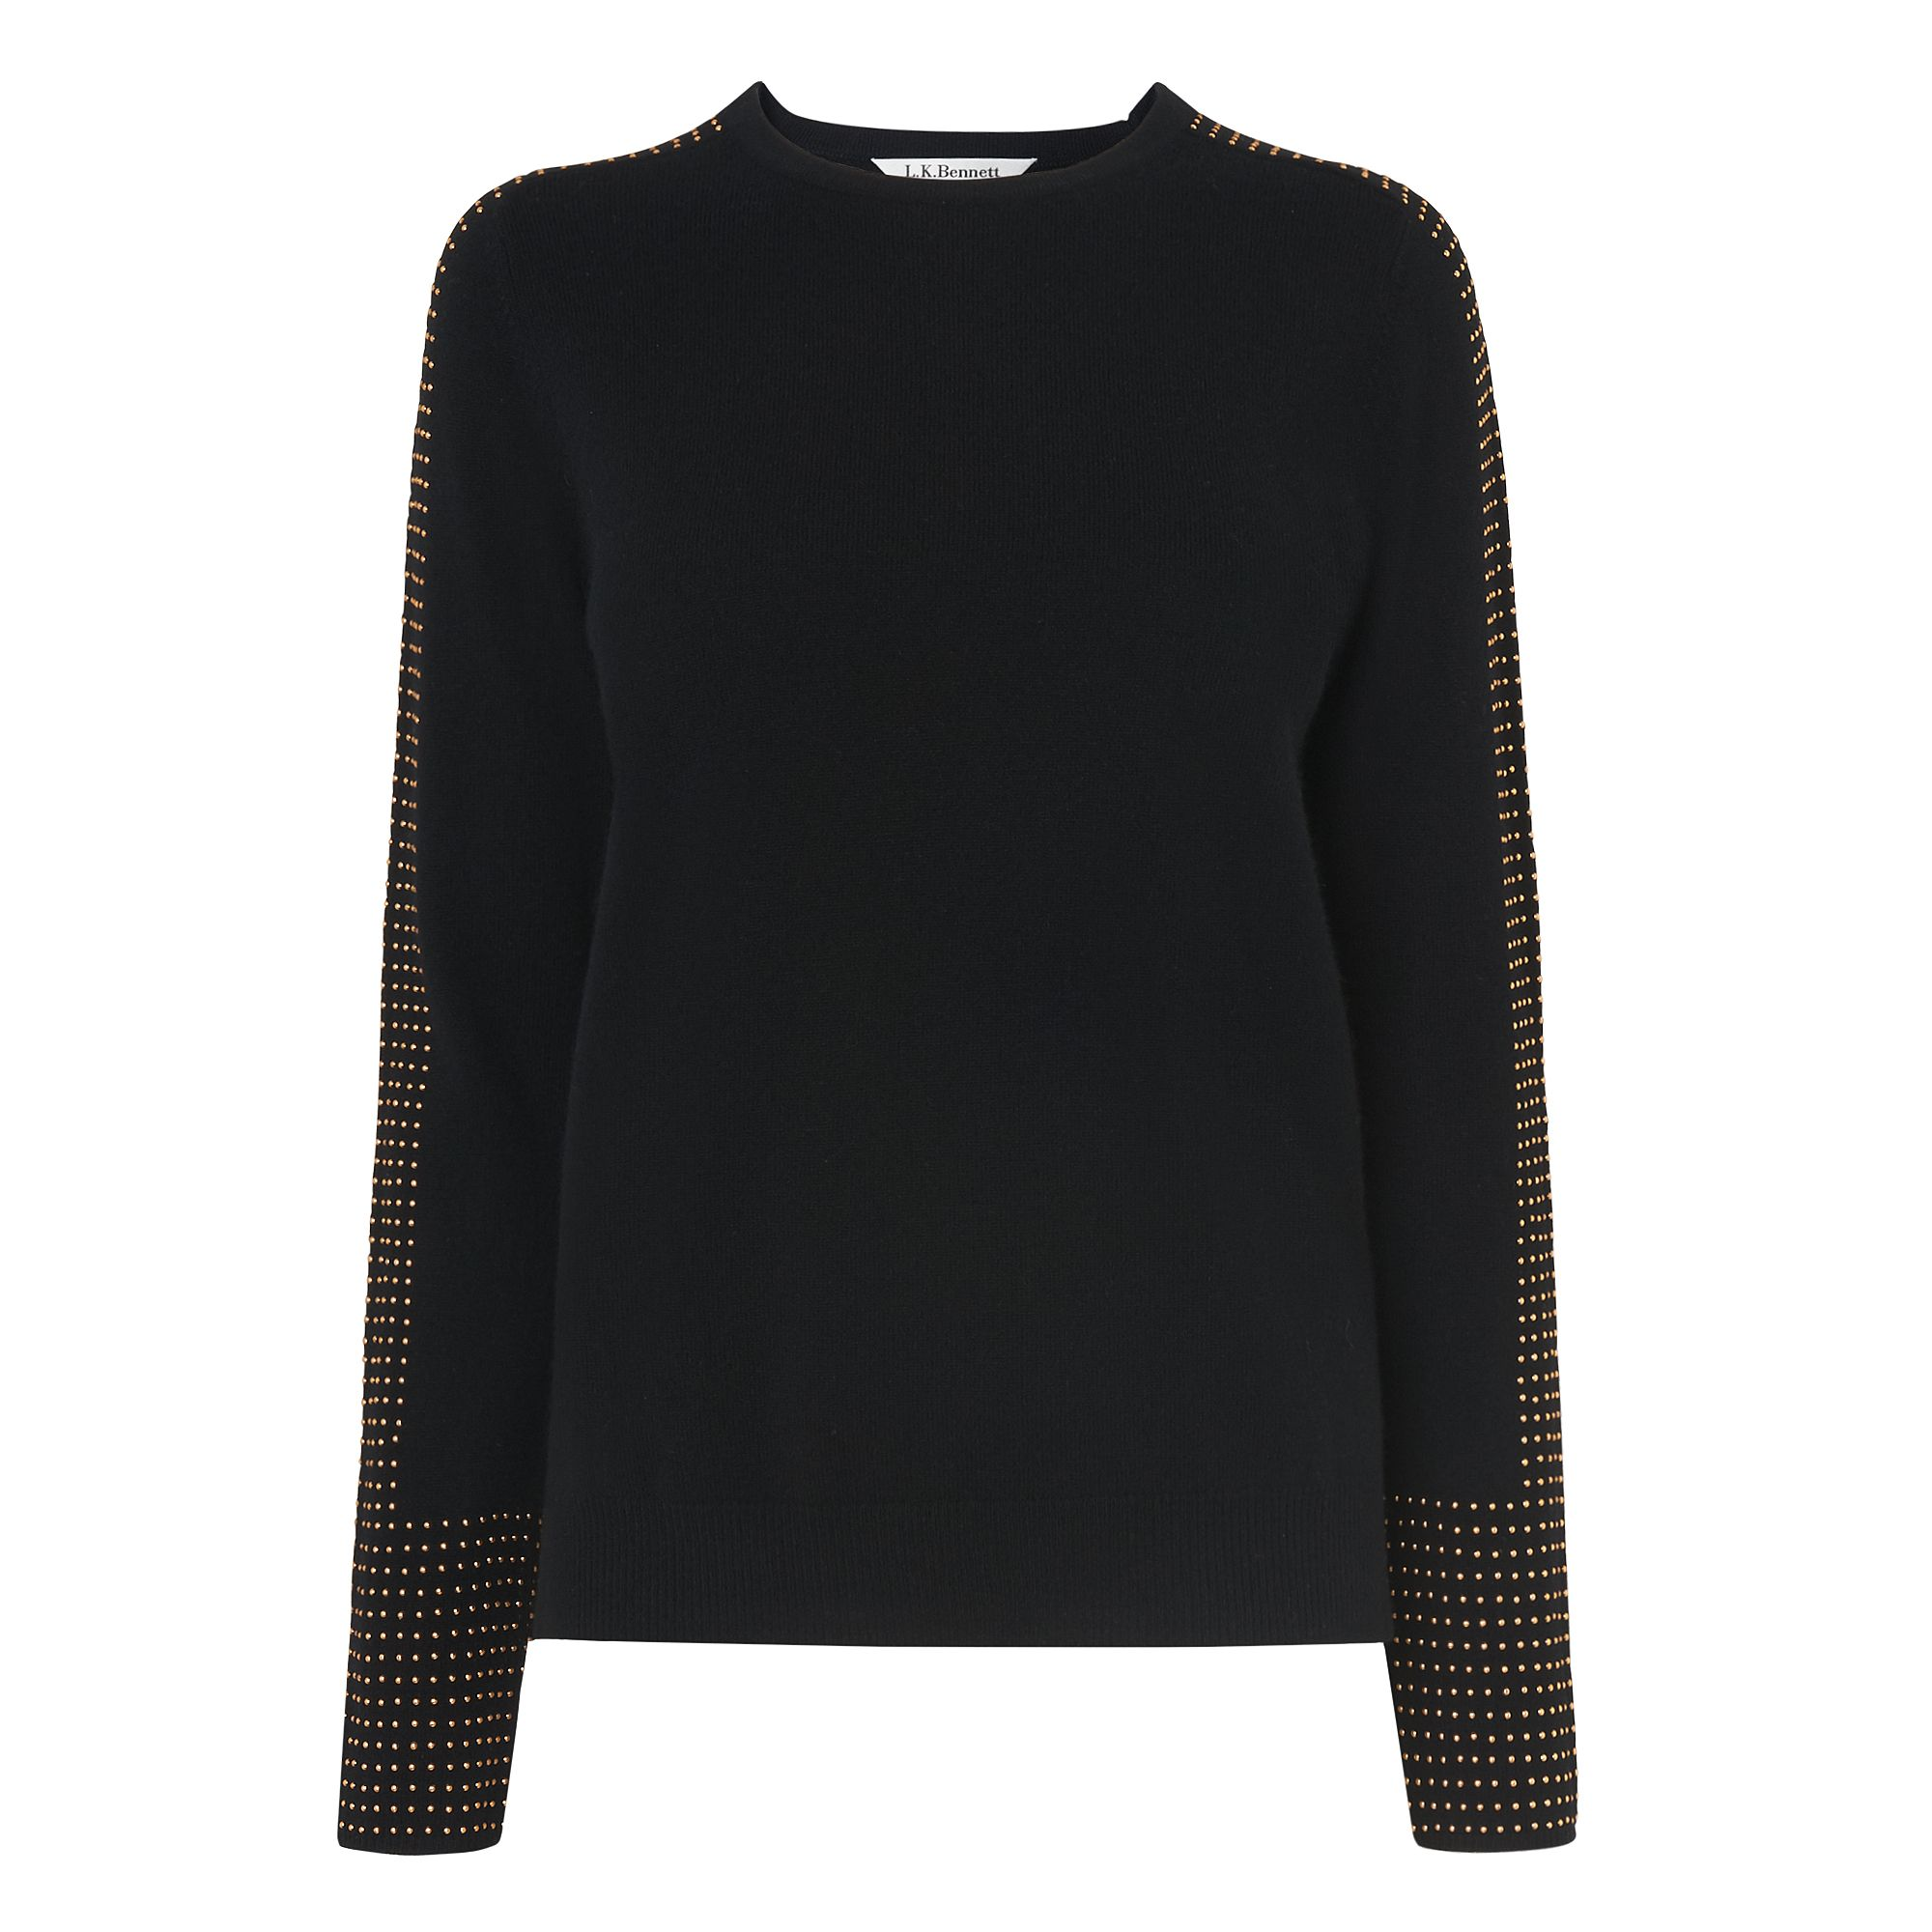 L.K.Bennett Adel Knitted Tops, Black